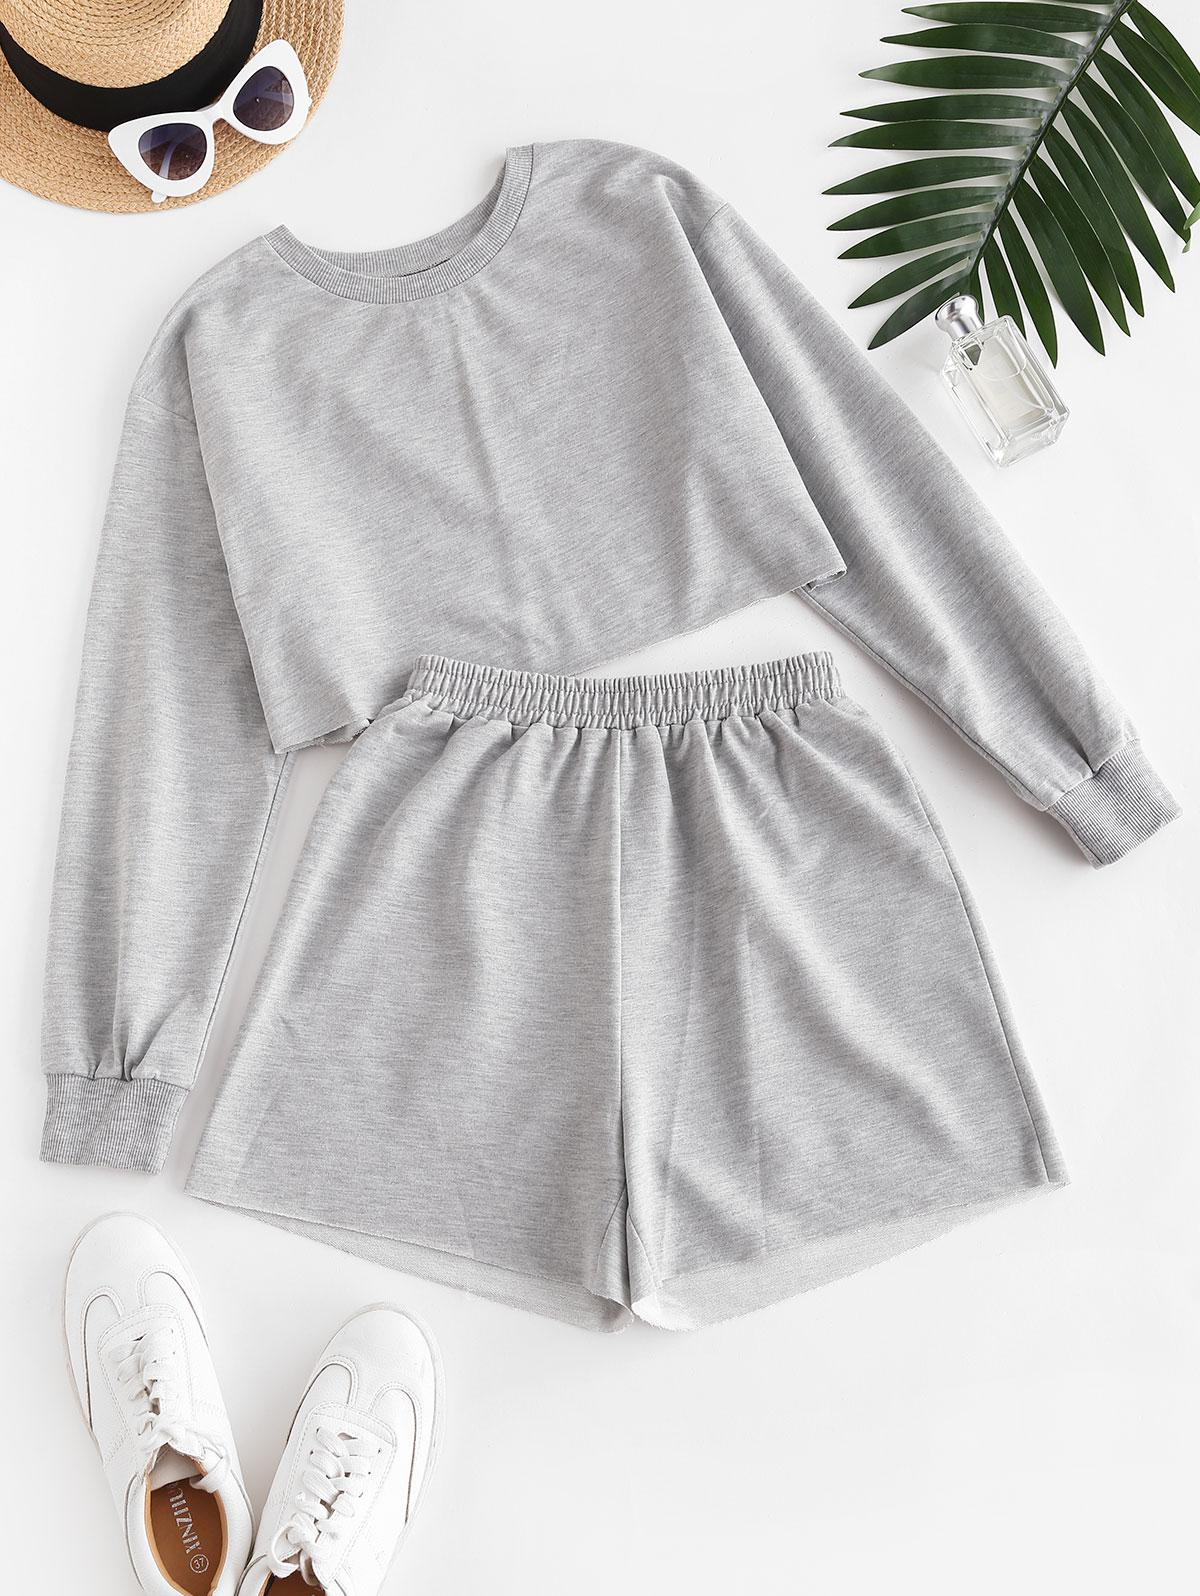 ZAFUL French Terry Raw Cut Two Piece Shorts Set